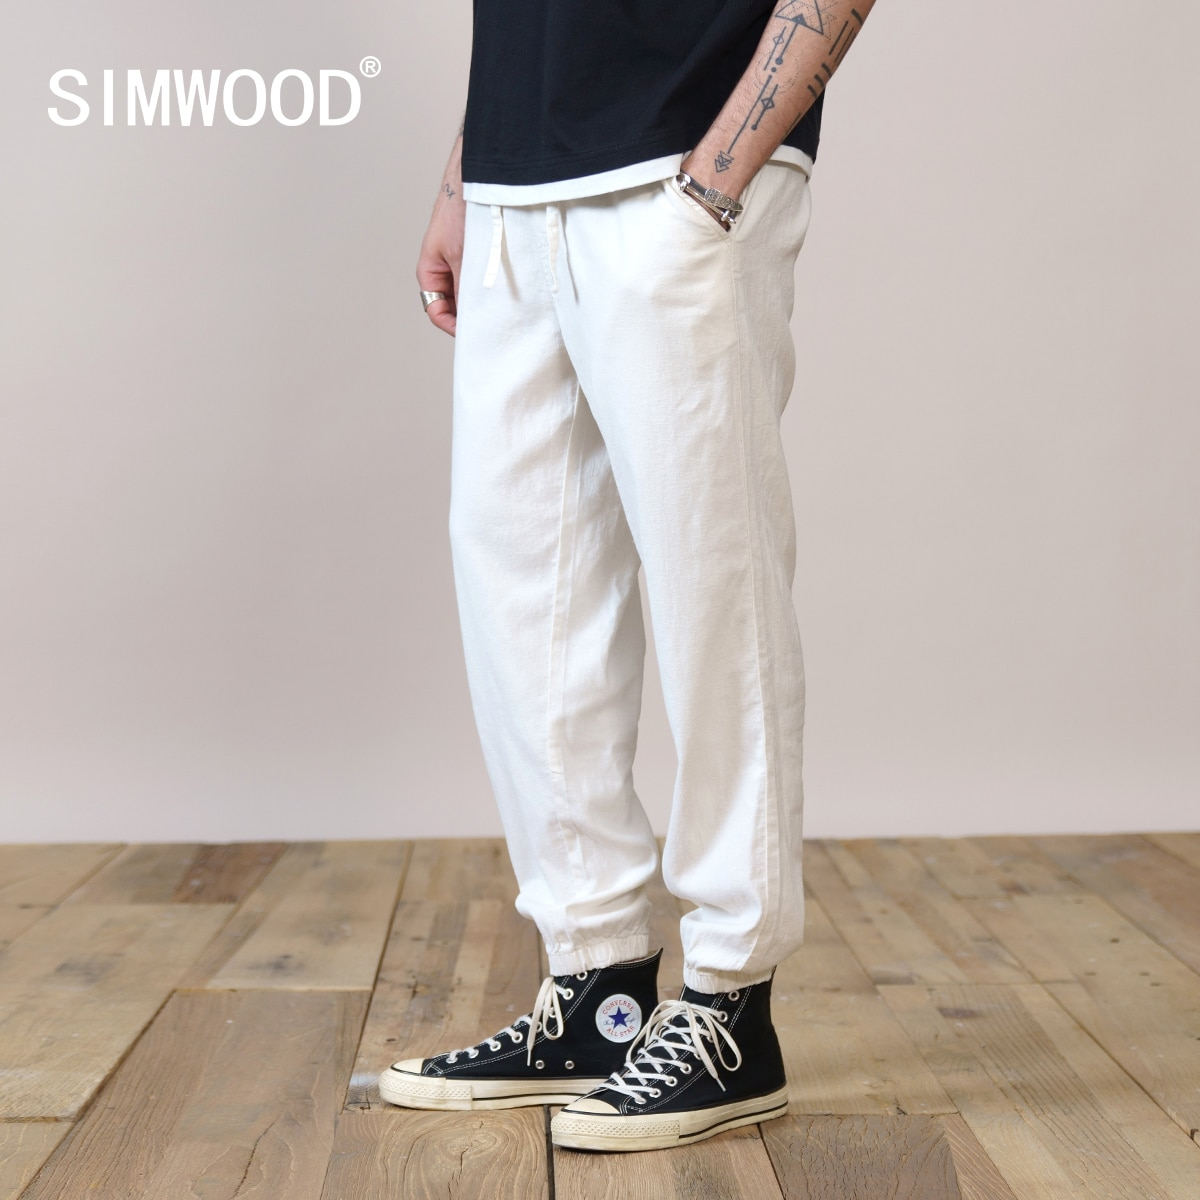 SIMWOOD 2021 Summer New Oversize Linen Blend Drawstring Pants Men Ankle-Length Loose Trousers Plus Size Brand Clothing SK130228